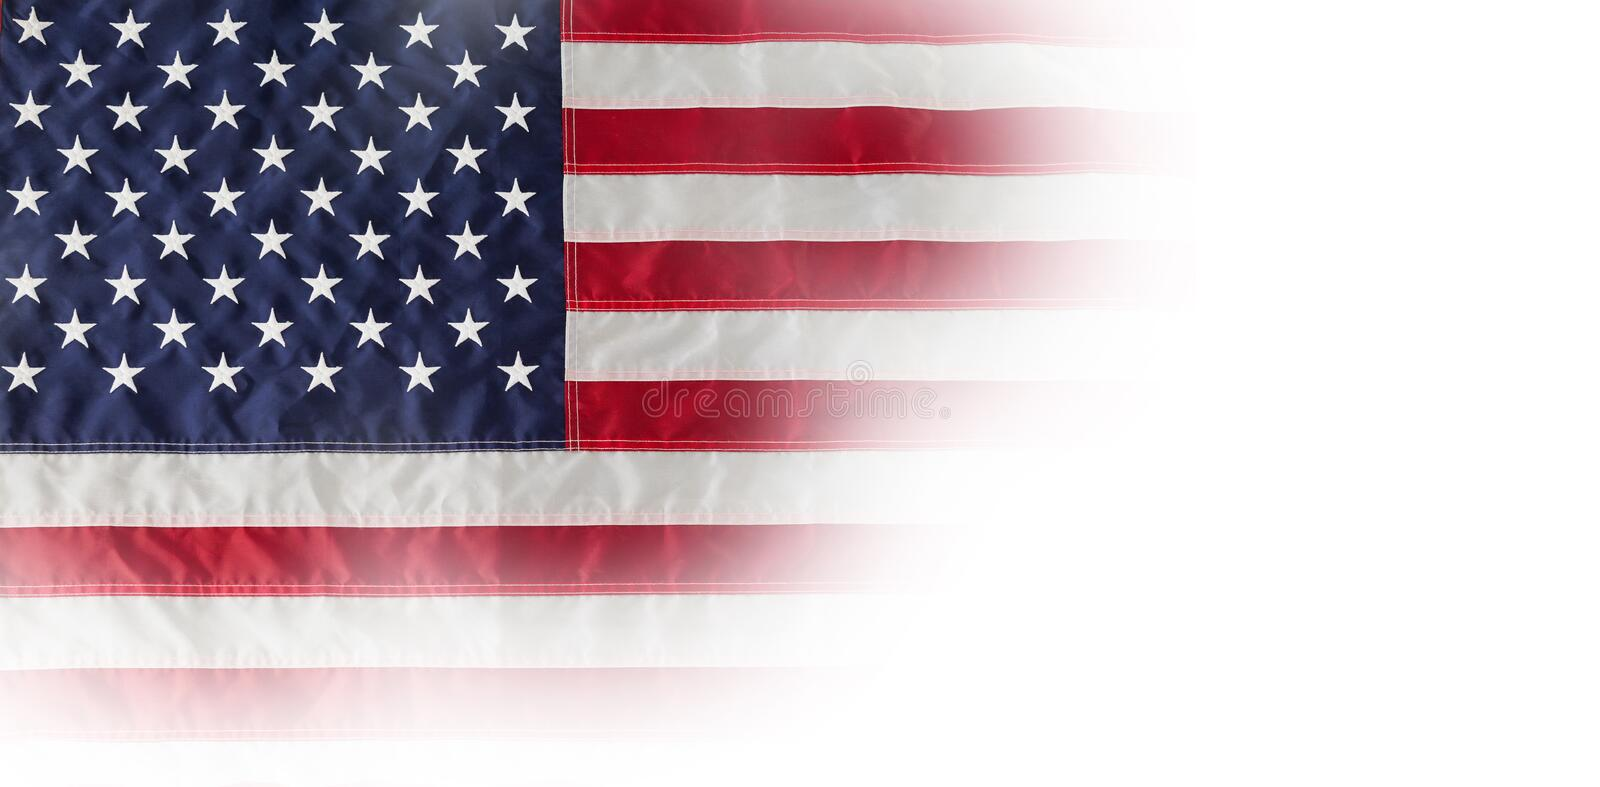 American national flag with stars and stripes. High angle view of American flag with stars and stripes royalty free stock photos